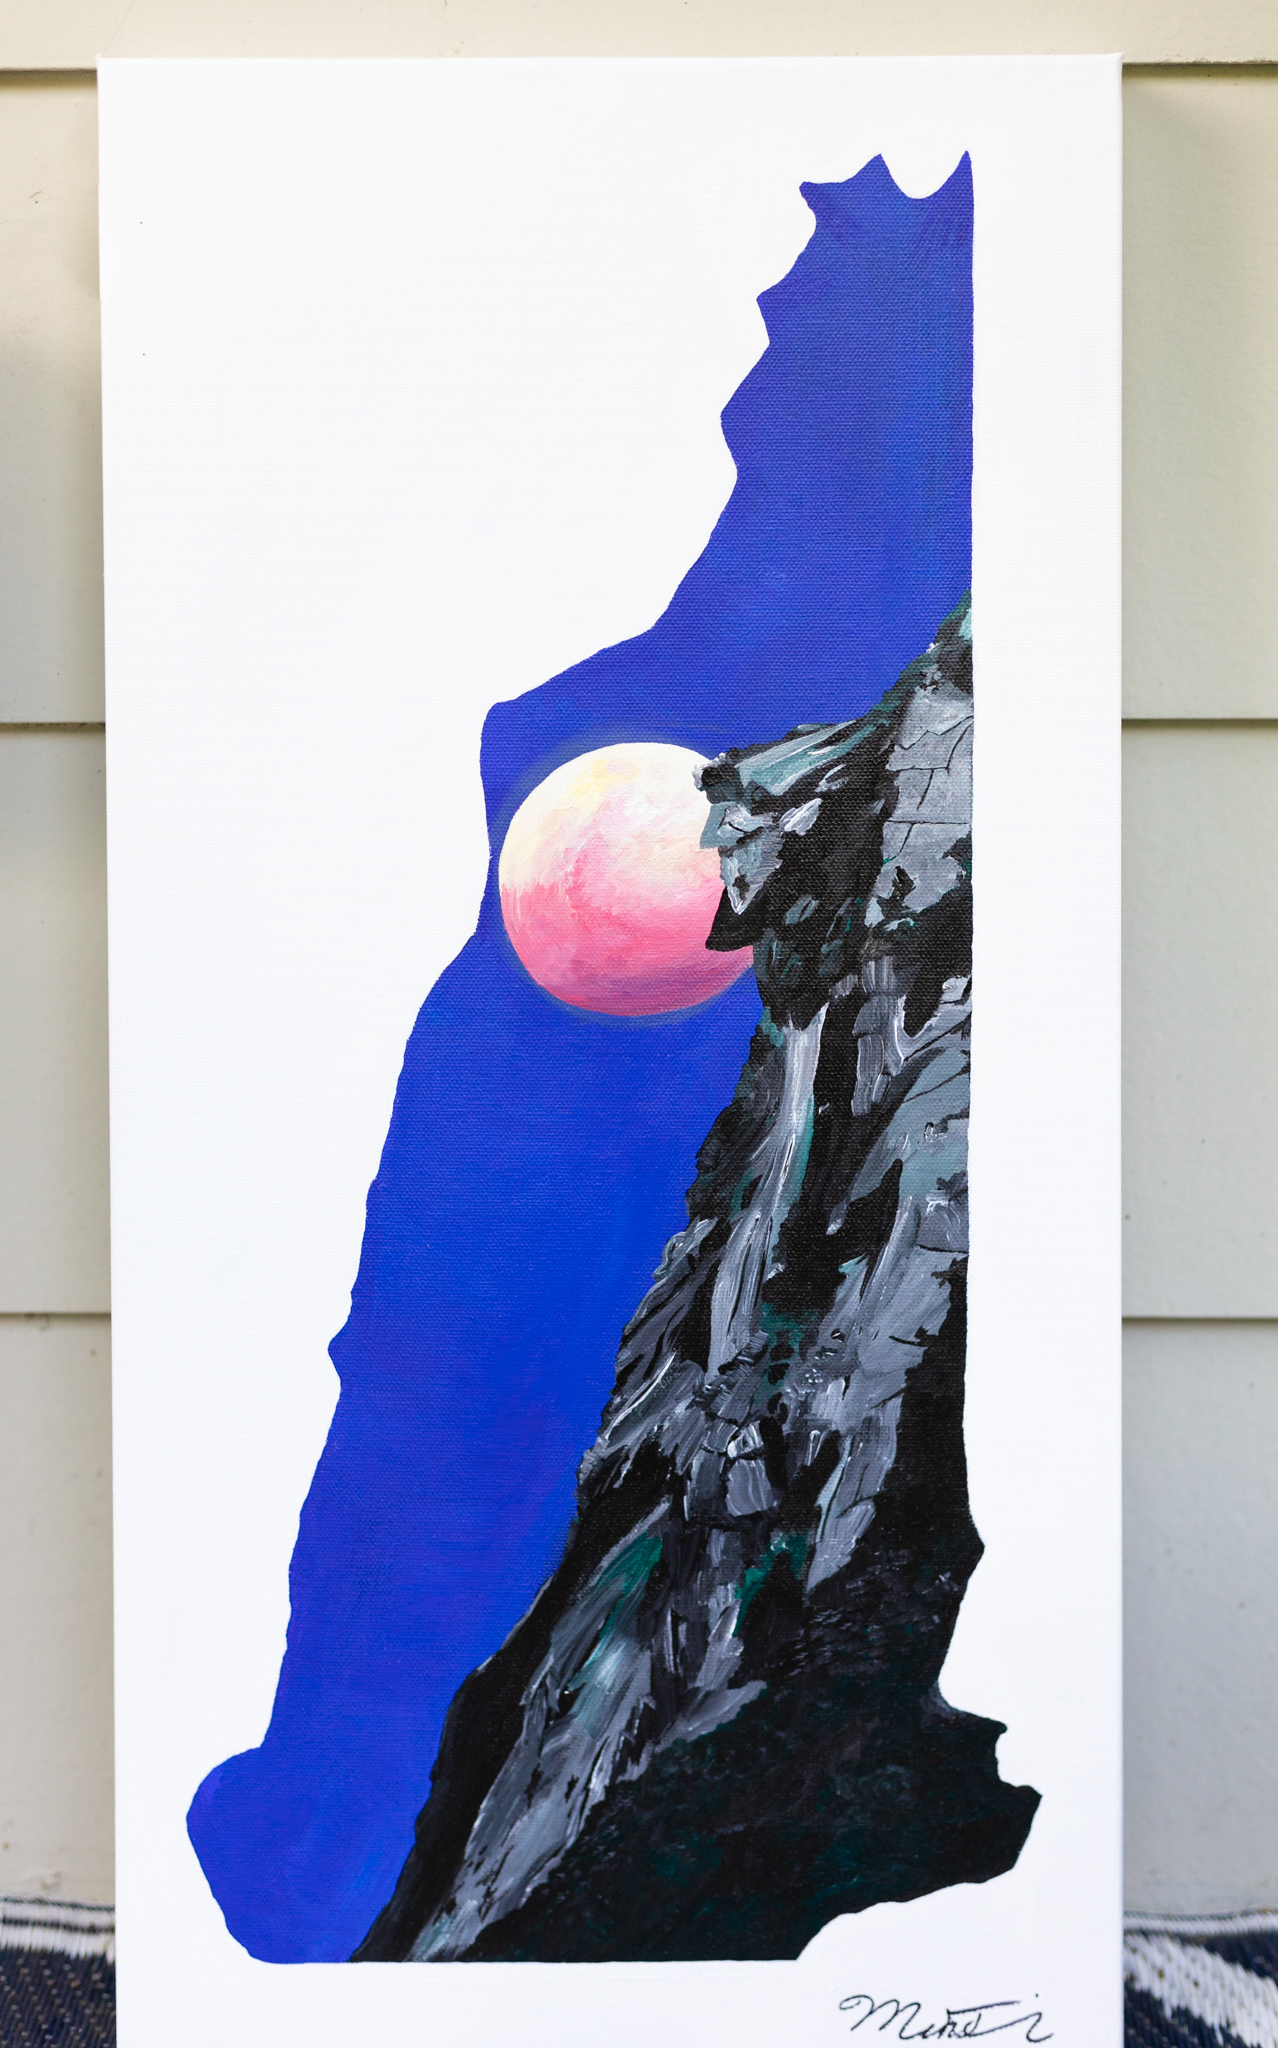 """NEW Hampshire - Old Man of the Mountain - White Mountains, NH12"""" x 24"""" Acrylic on Canvas"""